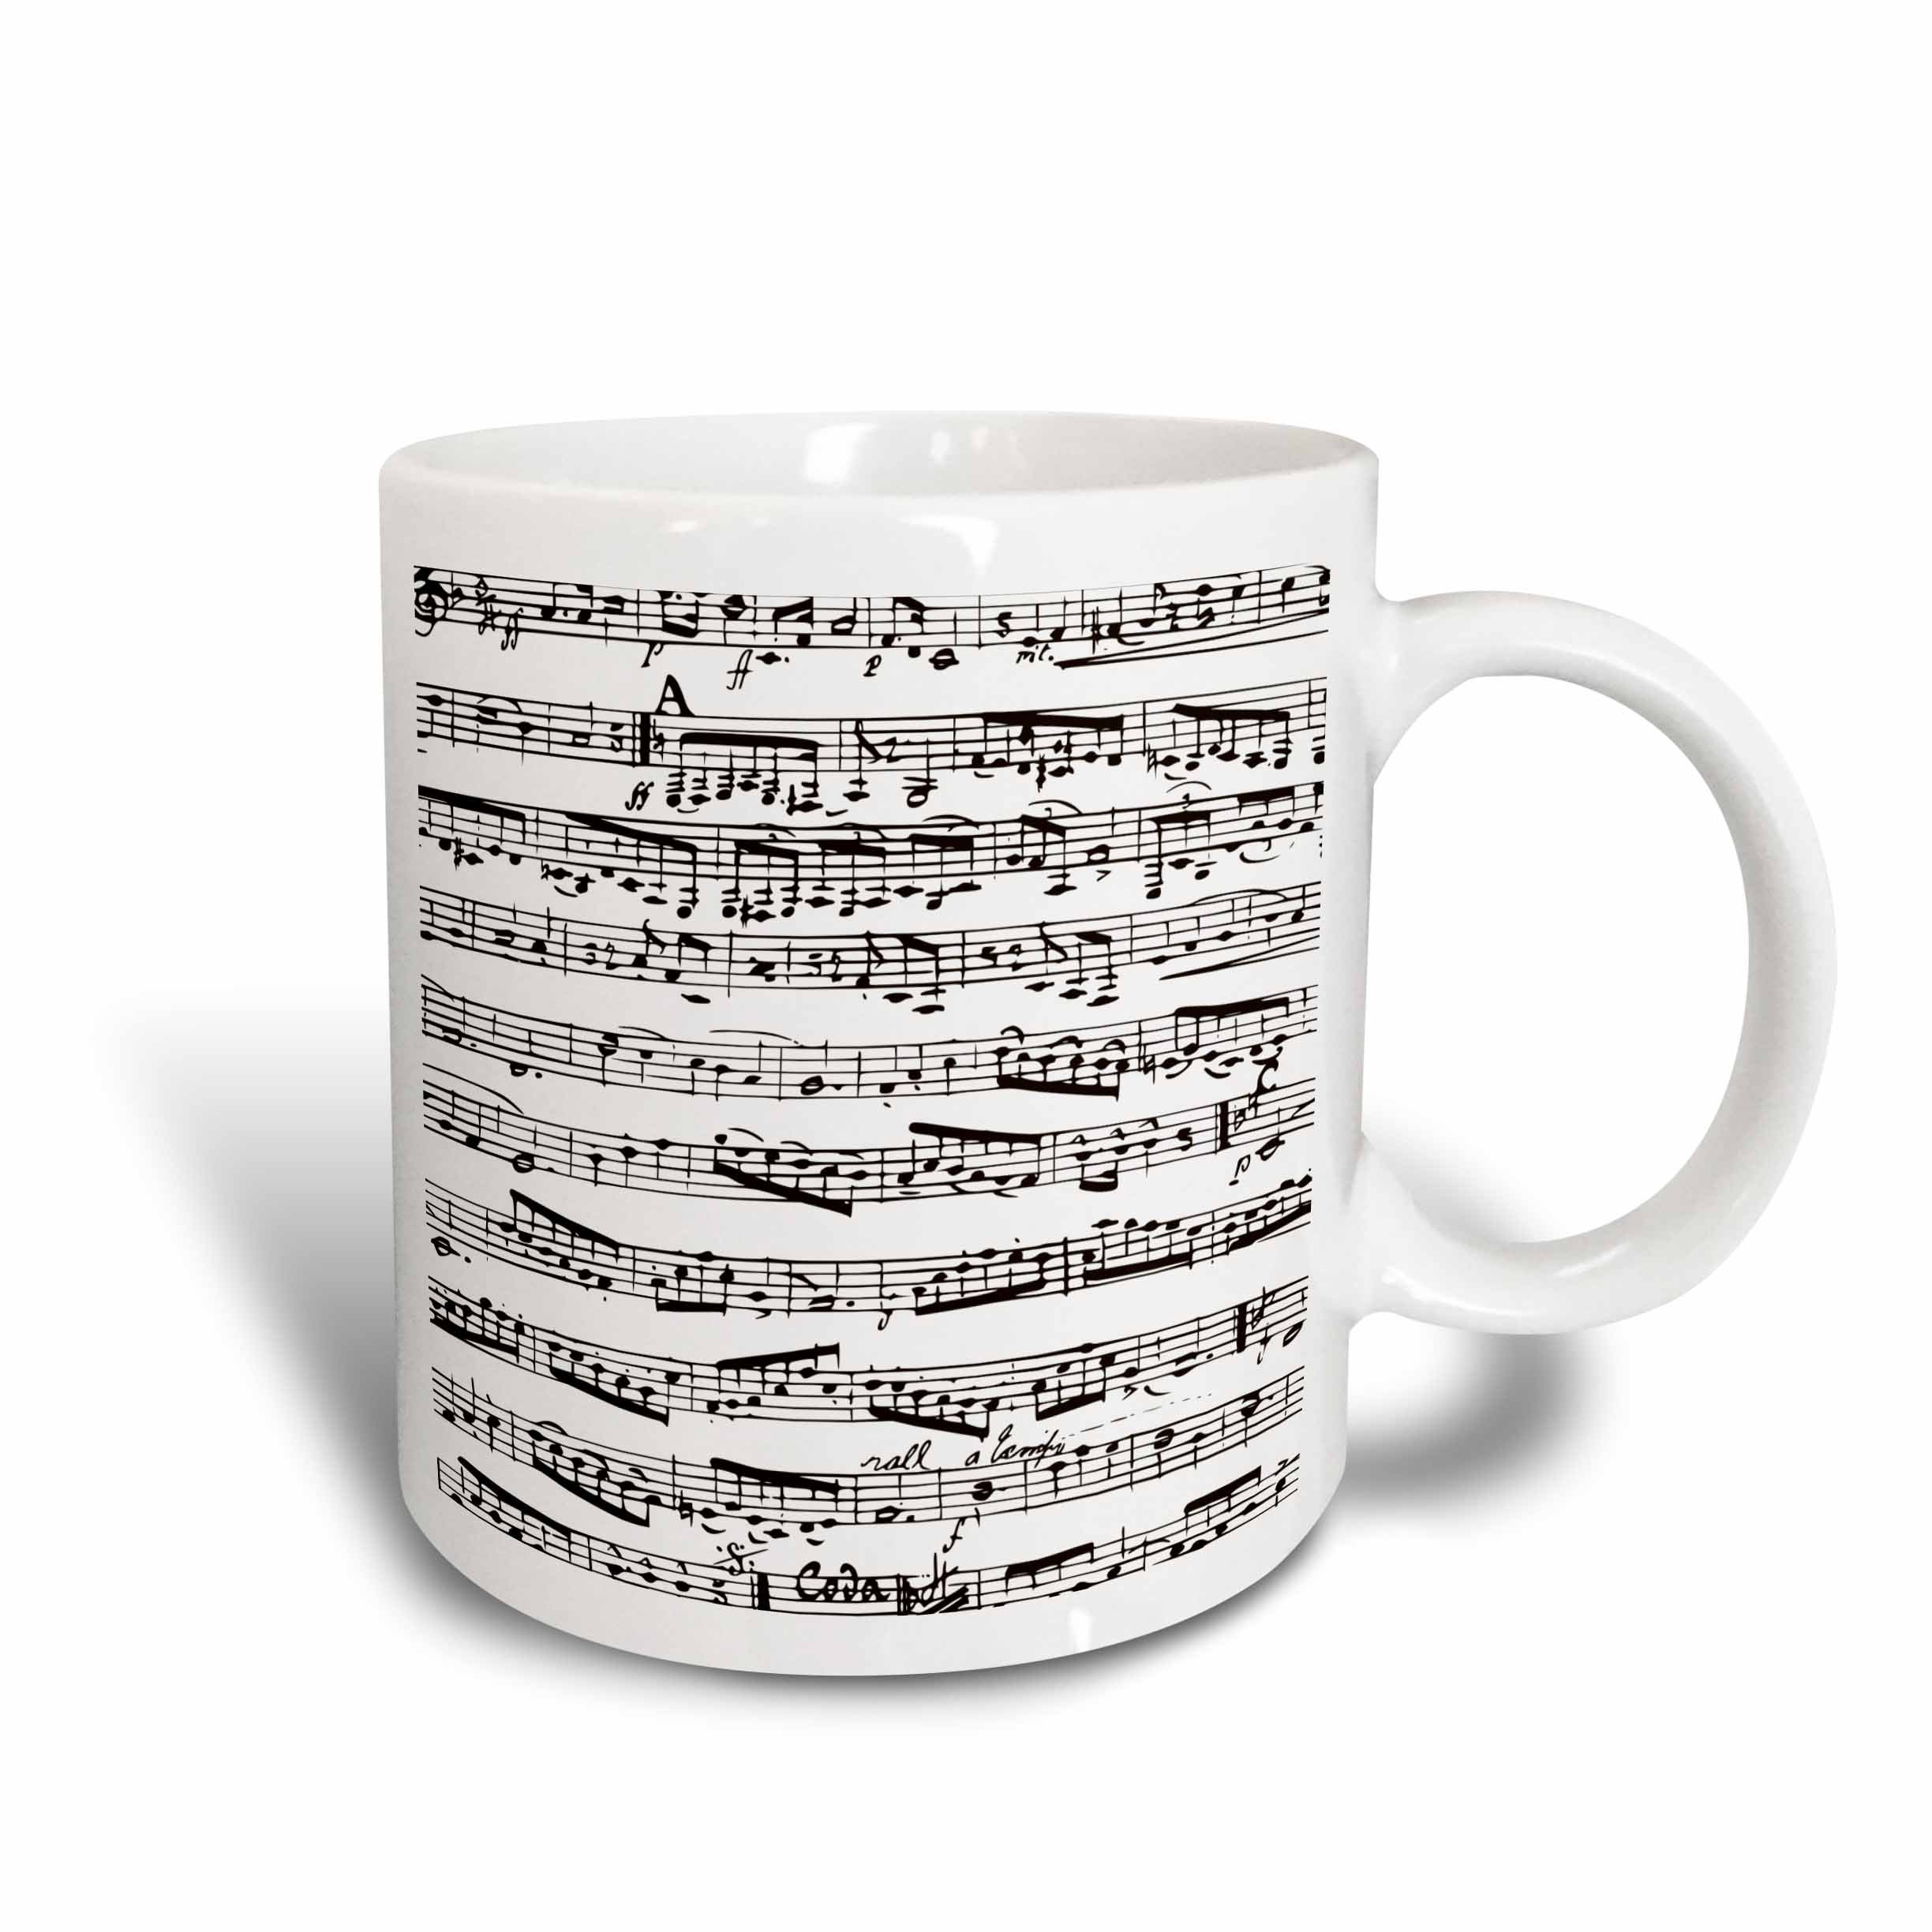 3dRose mug_112825_2 Musical Notes Vintage Sheet Music Black and White Piano Notation Pianist and Musician Gifts Ceramic Mug, 15-Ounce